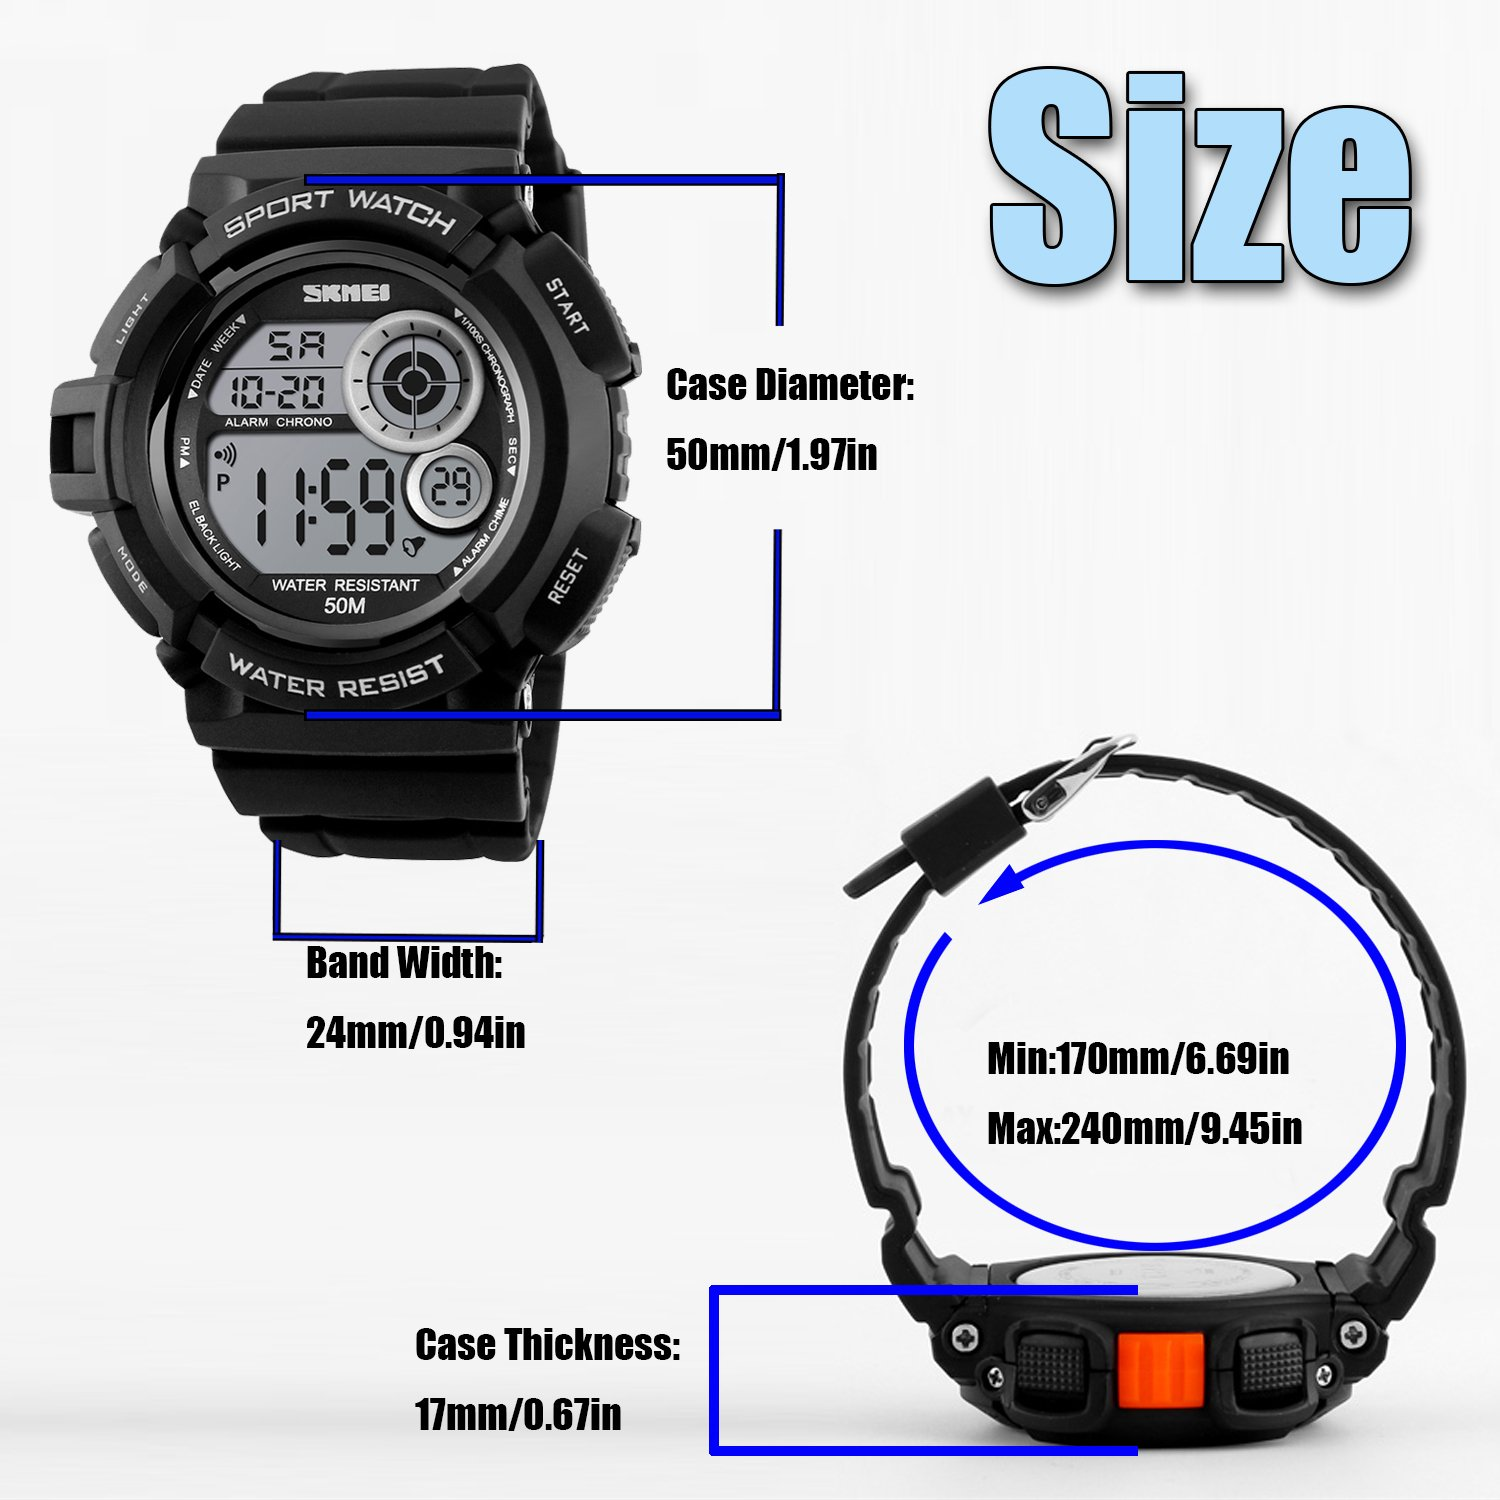 Men's Digital Sports Watch LED Screen Large Face Military Watches and Waterproof Casual Luminous Stopwatch Alarm Simple Army Watch Black by USWAT (Image #6)